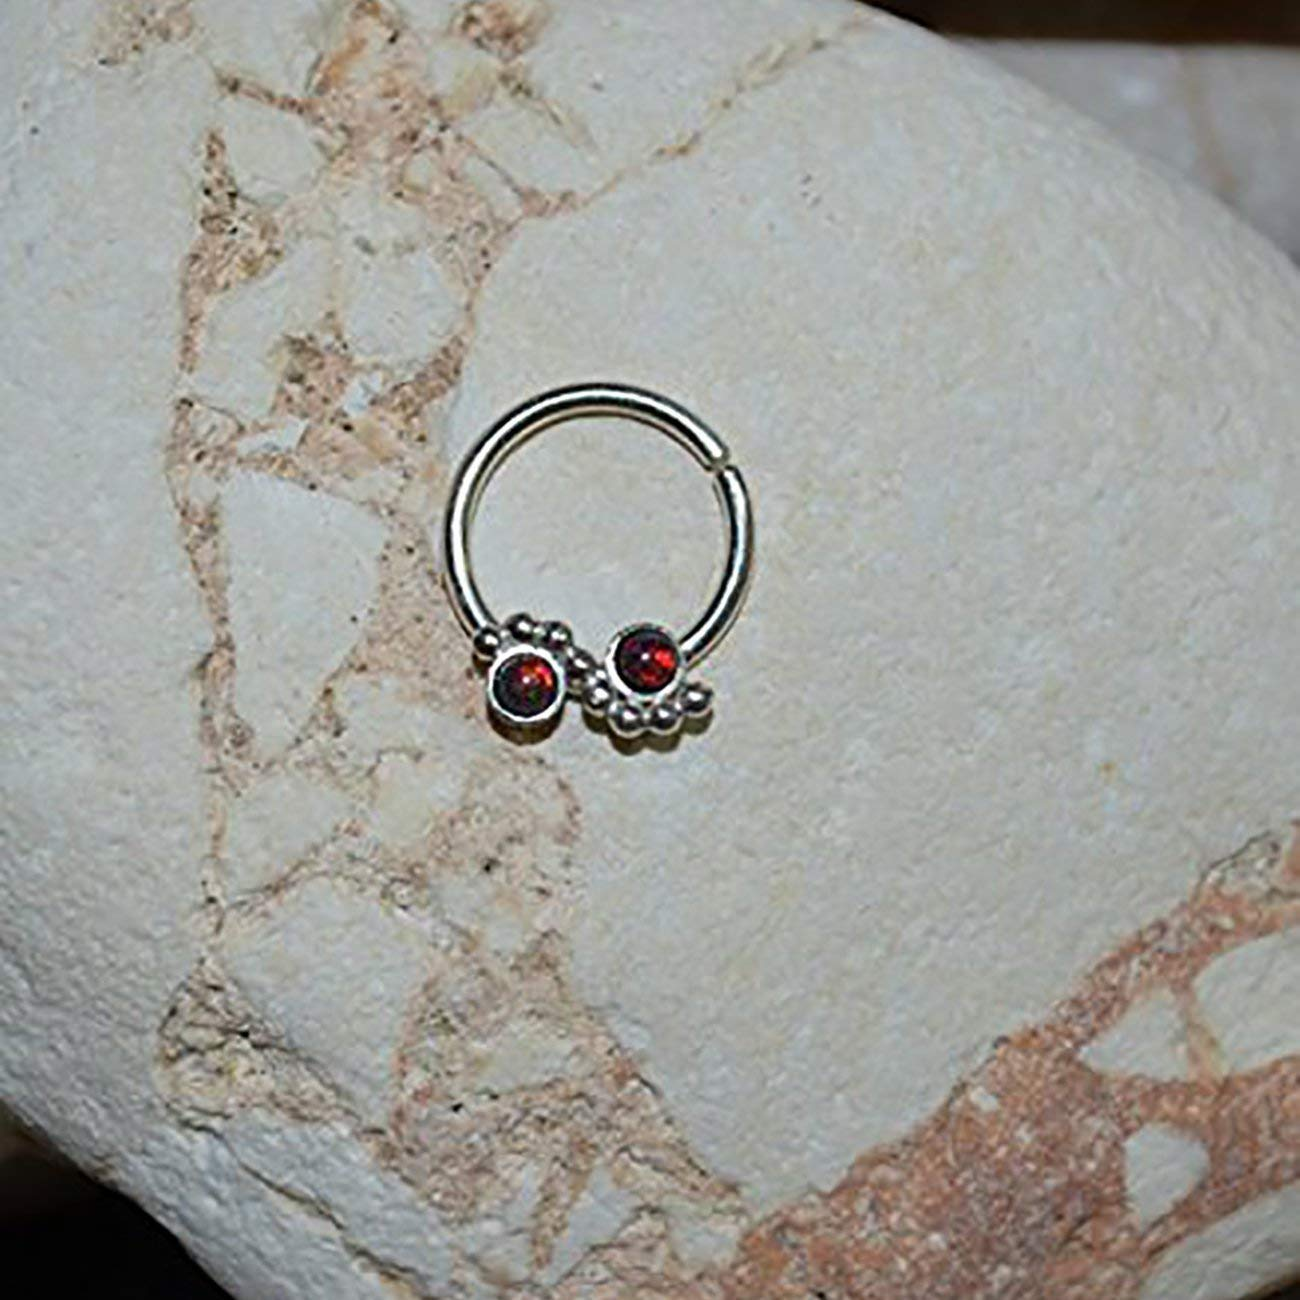 Get Quotations · 2mm Black-Red Opal SEPTUM RING  Silver Septum Piercing -  Small Nose Ring 9804795eb80c